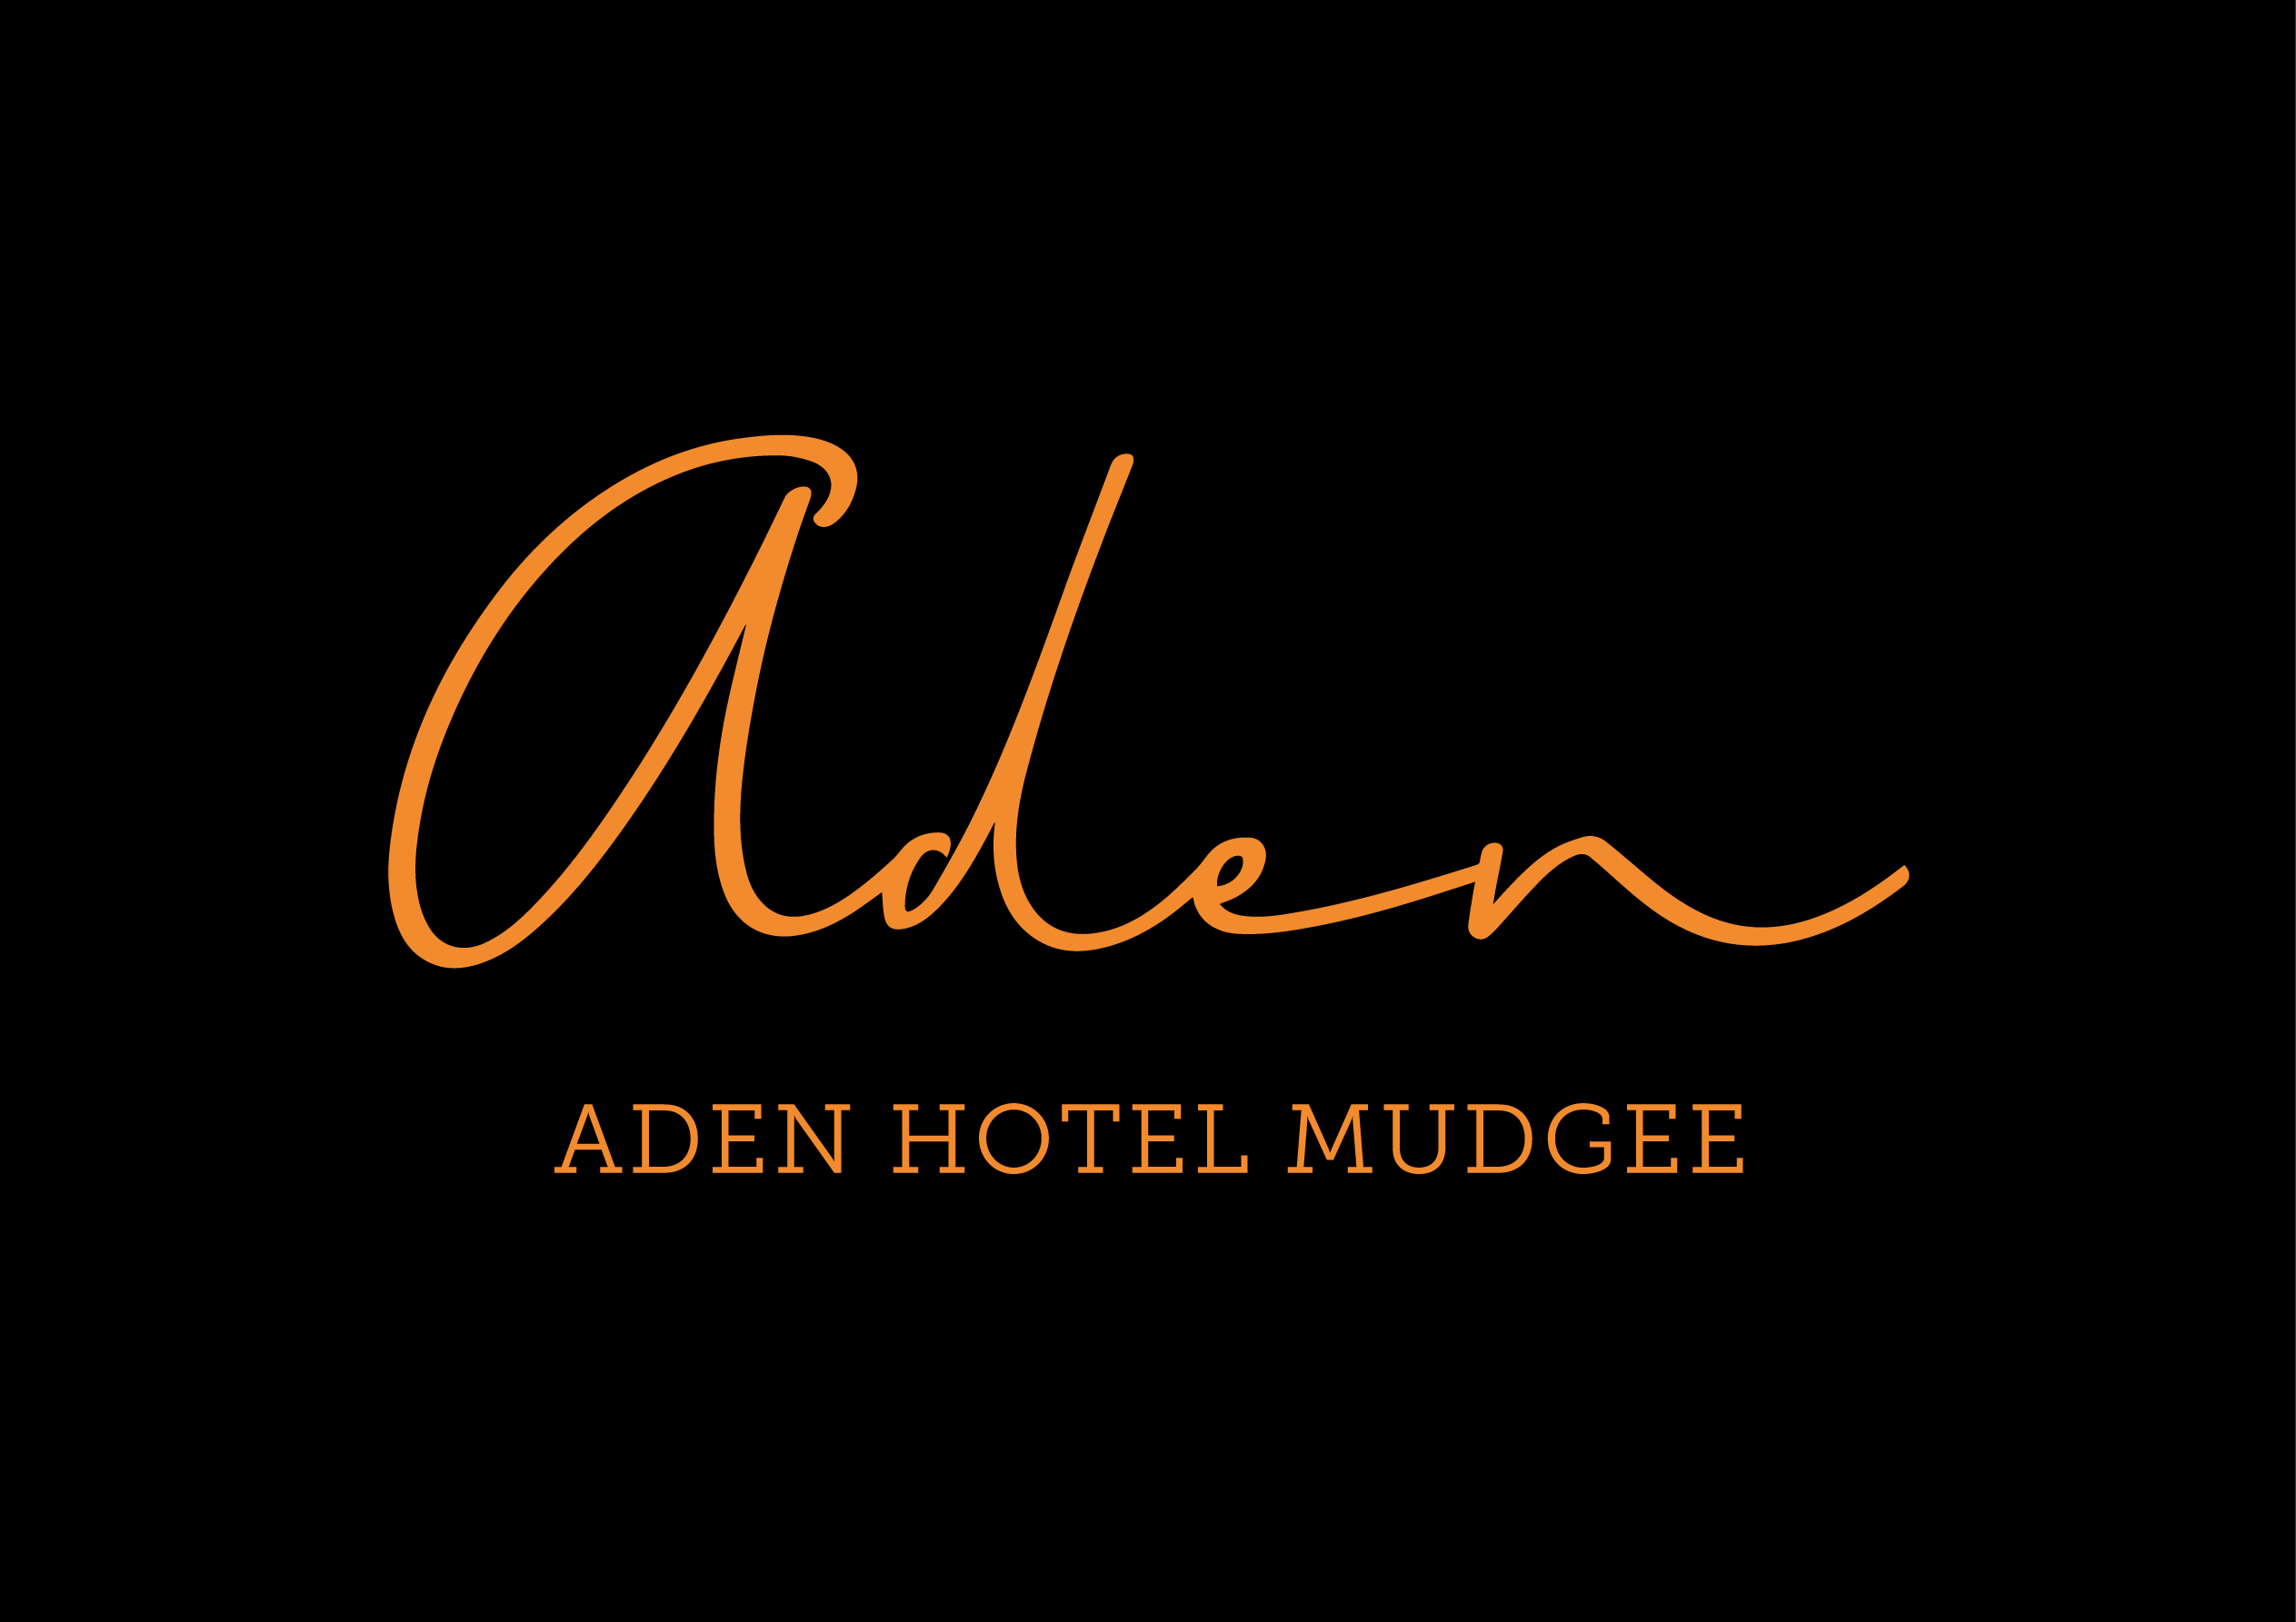 Comfort Inn Aden Hotel Mudgee - Maitland Accommodation